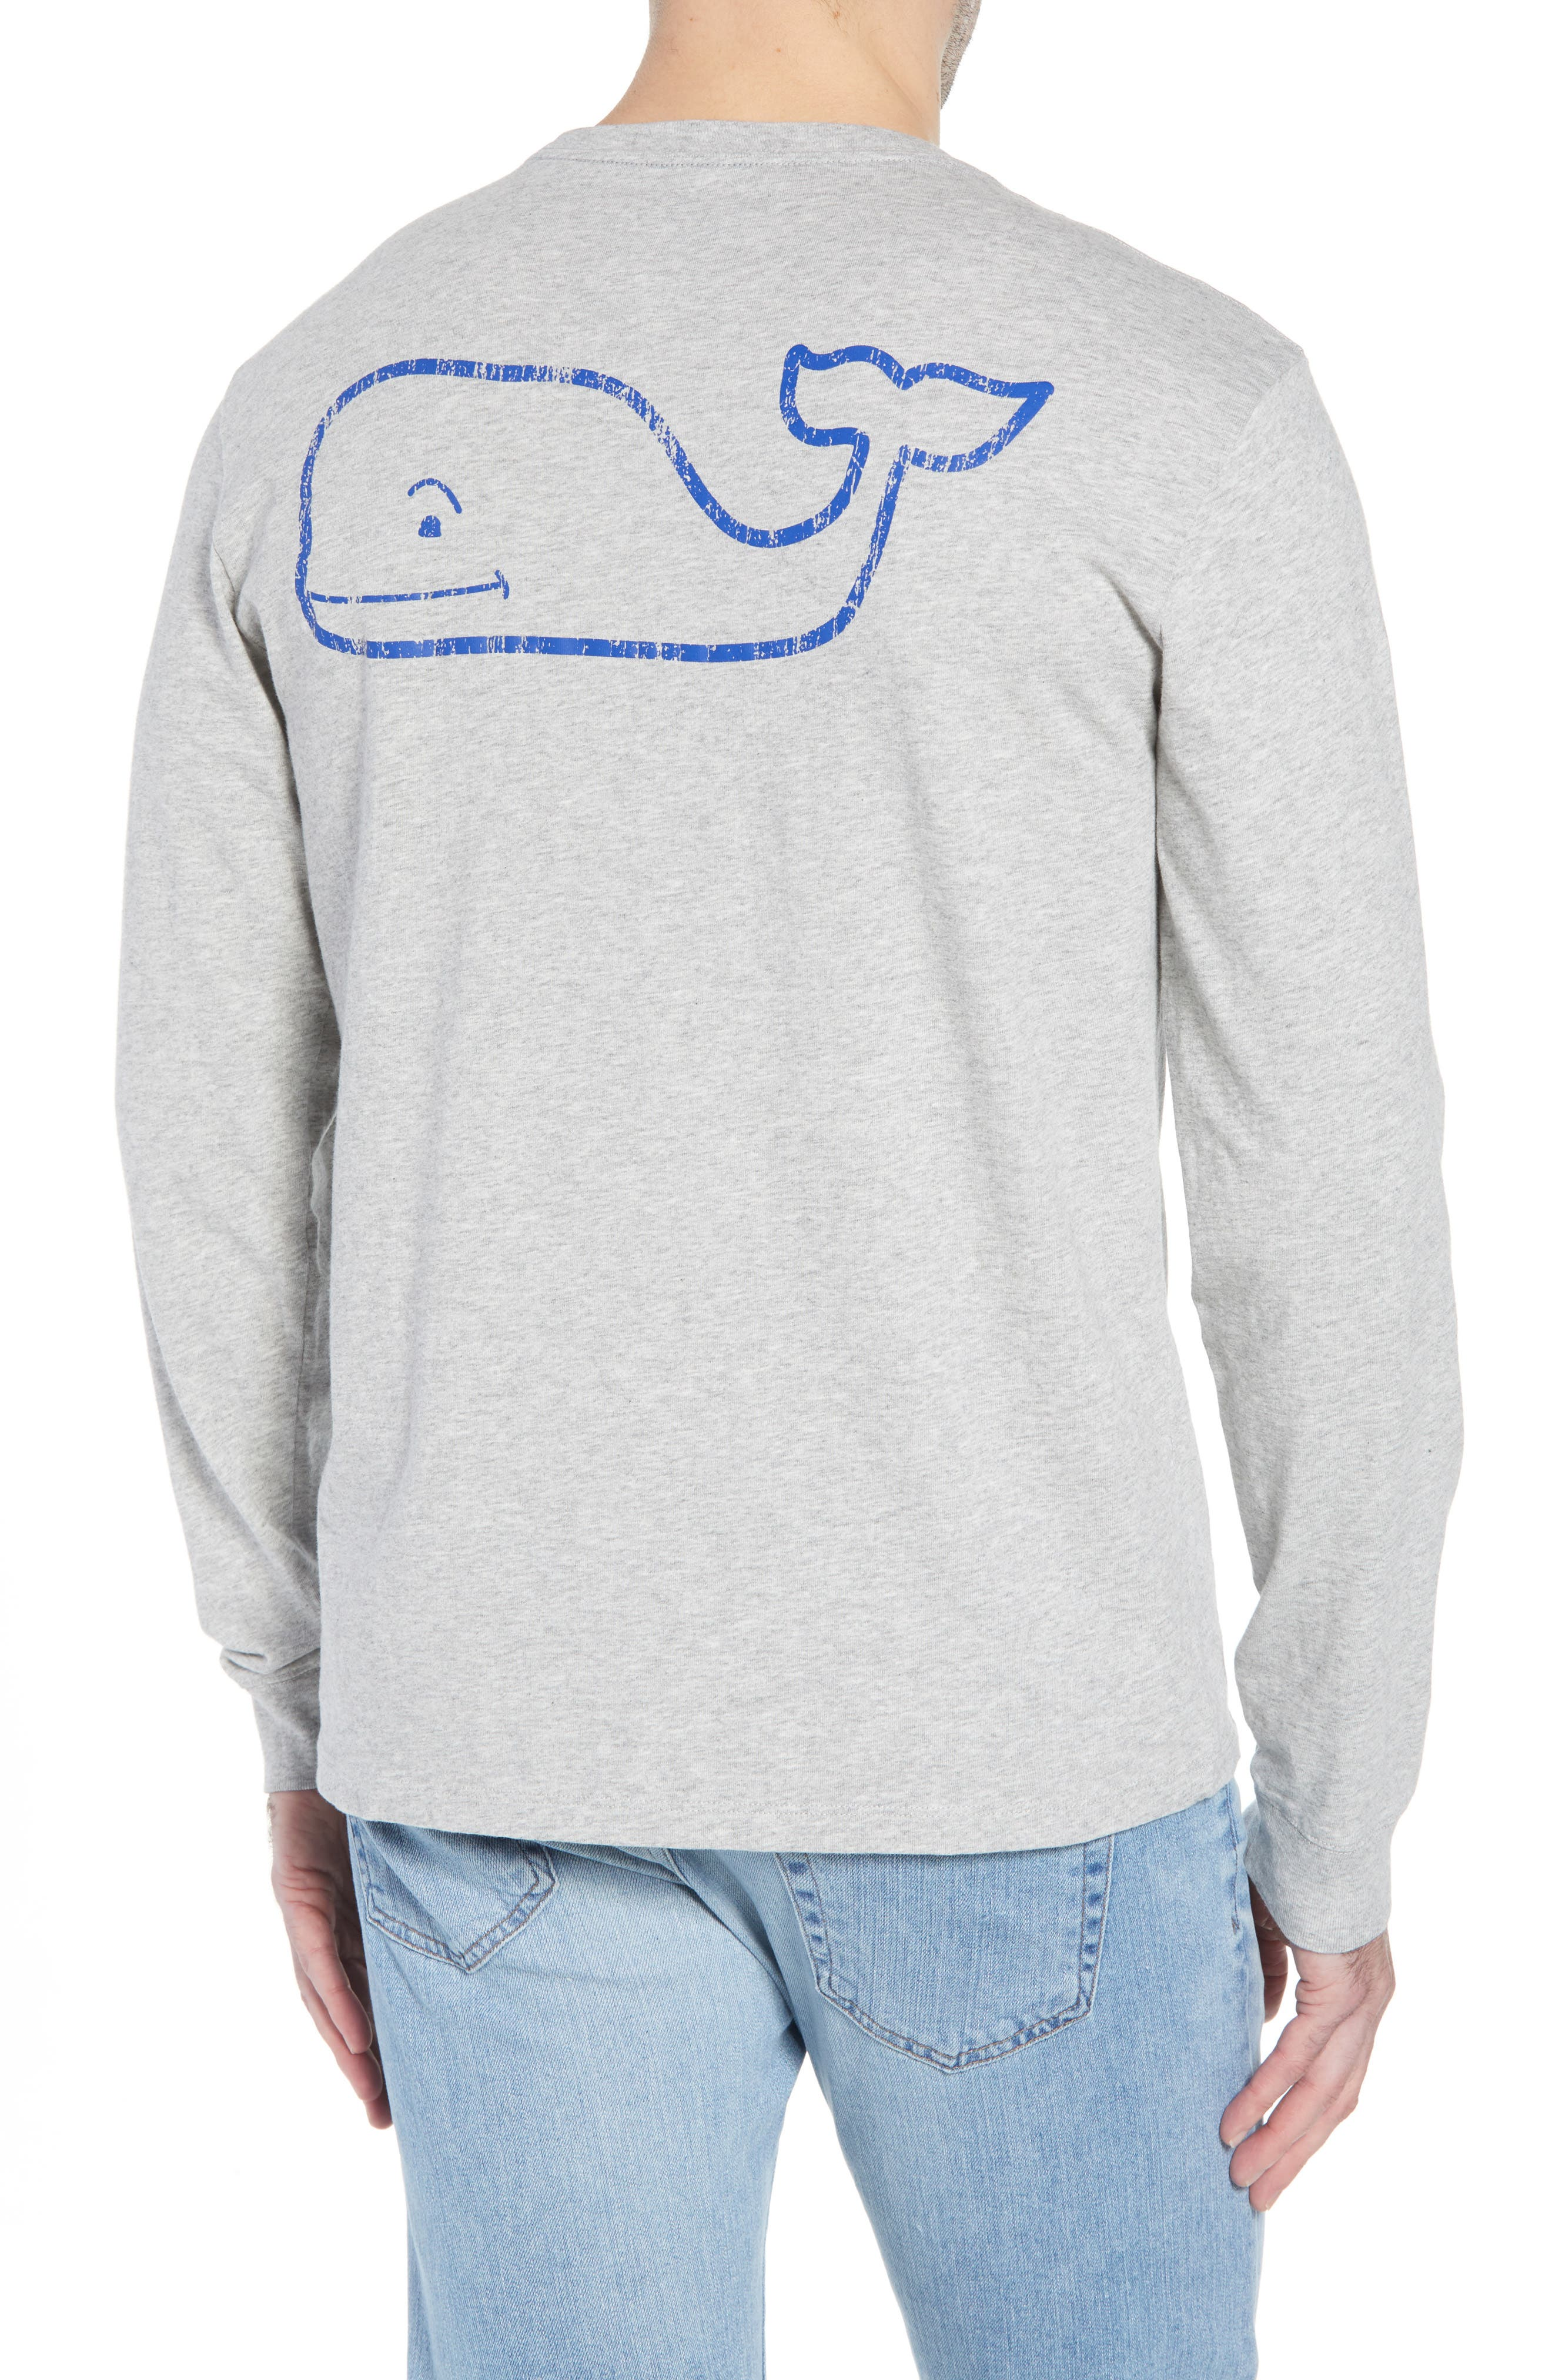 Alternate Image 2  - vineyard vines Vintage Whale Graphic Pocket T-Shirt